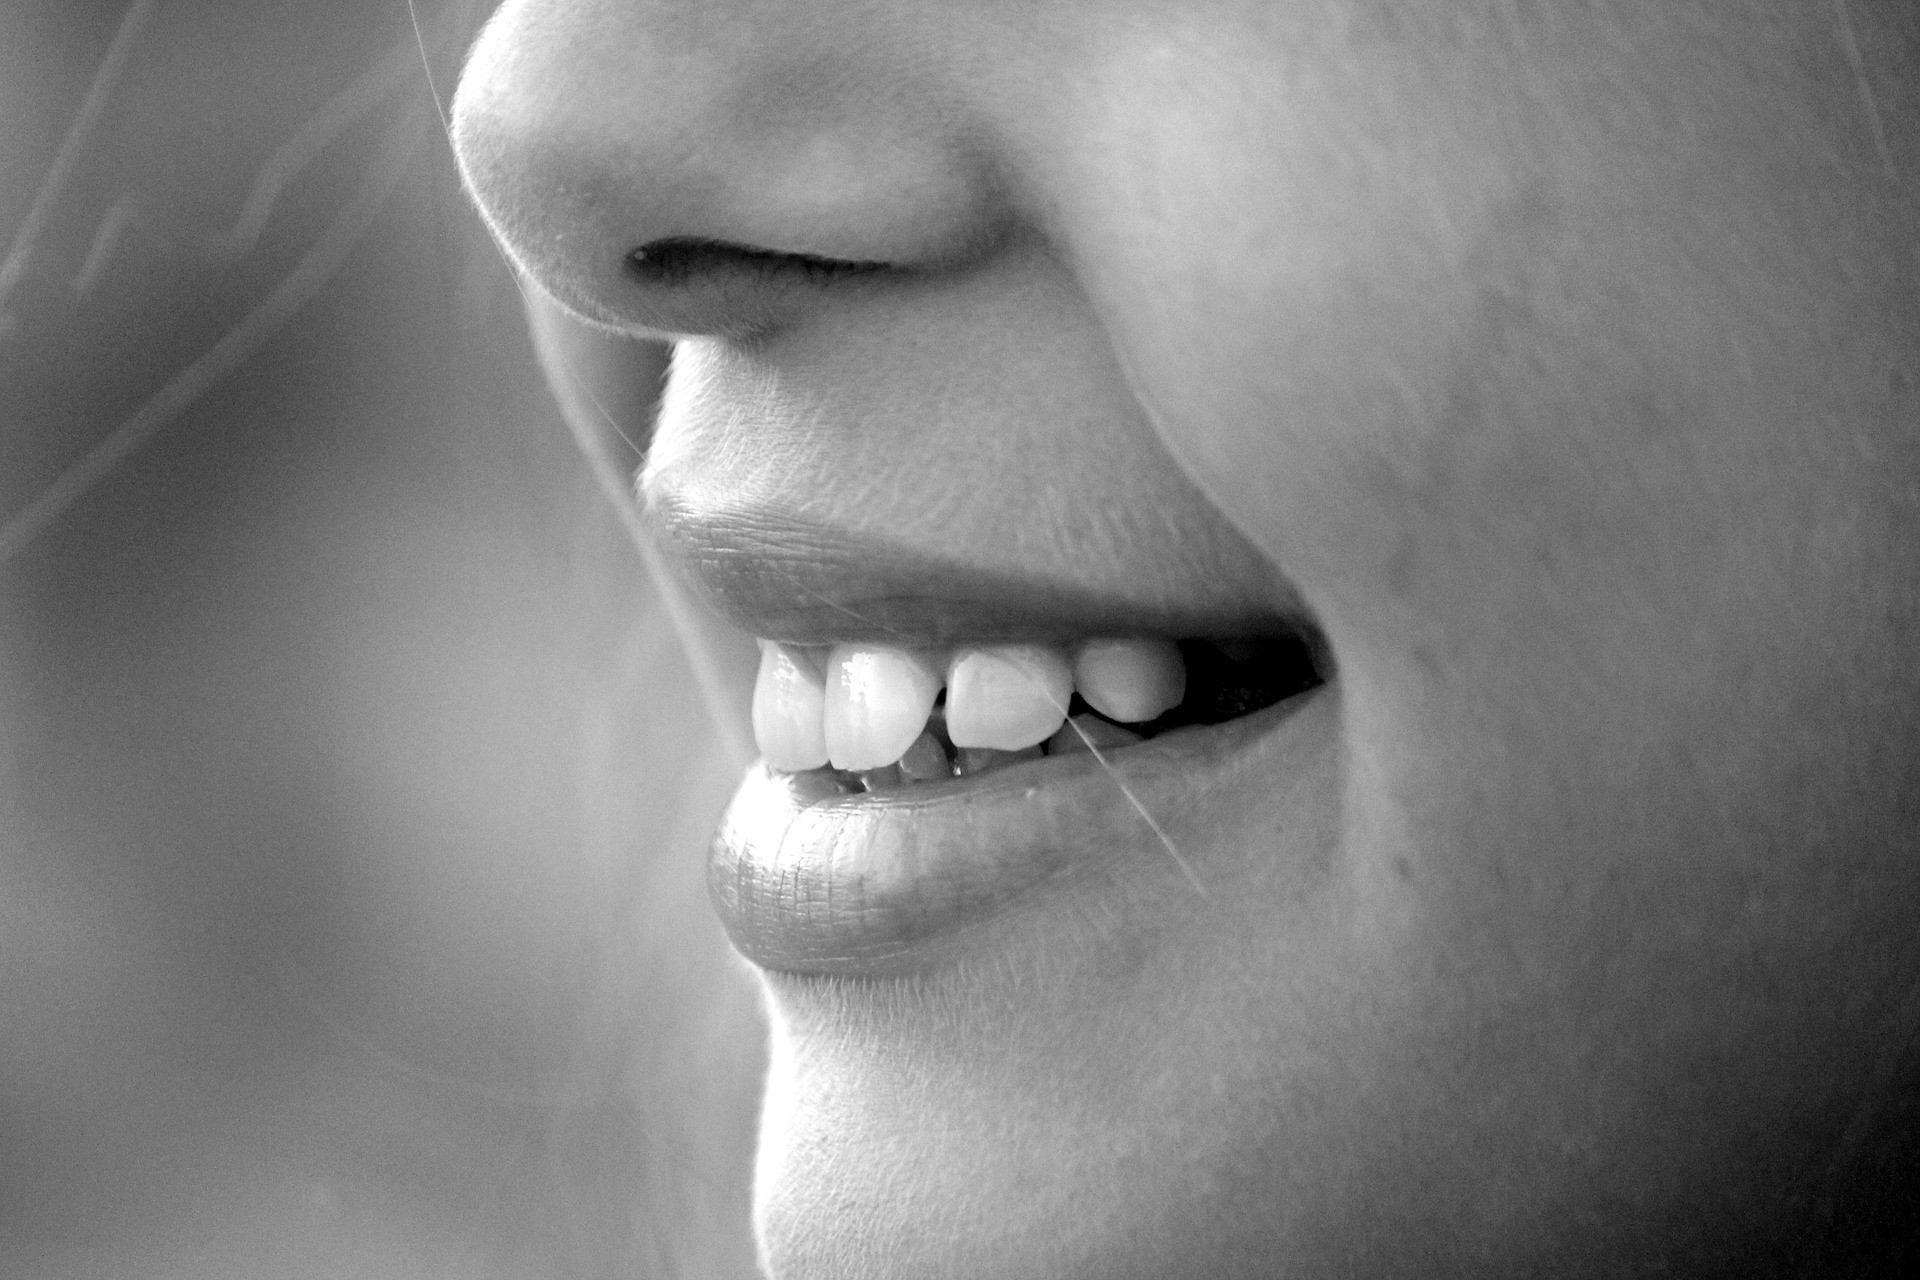 Straightening Teeth Without Braces – Forever Young – Medium